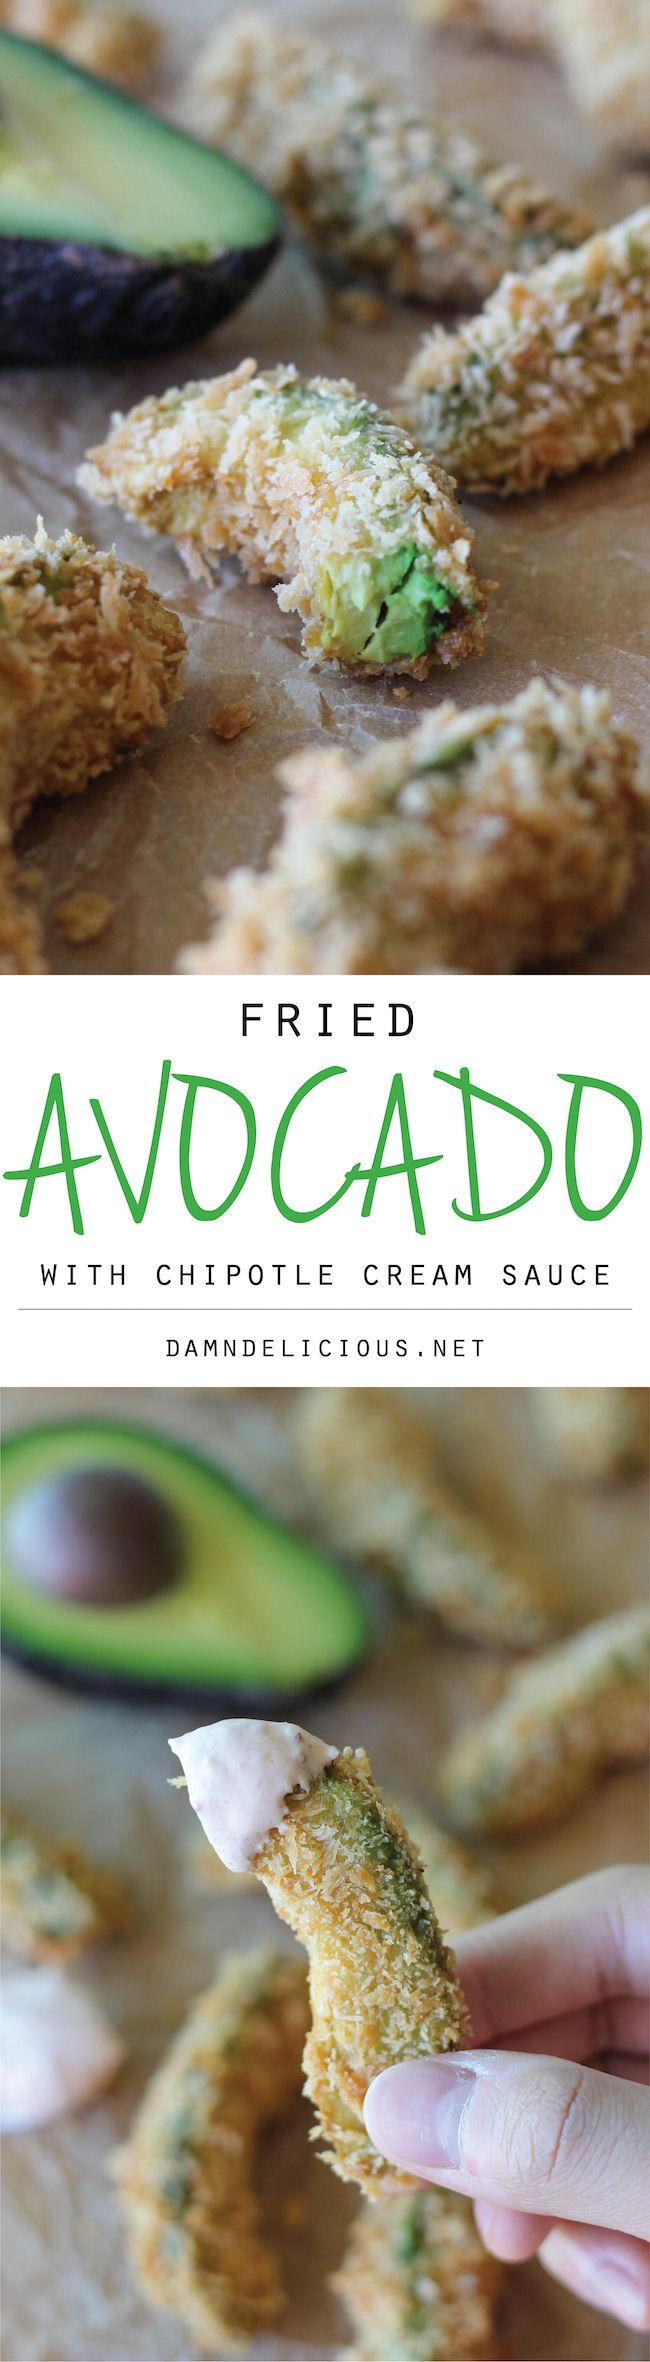 Fried Avocado with Chipotle Cream Sauce - The only way to eat an avocado is when they're deep fried in a Panko crust and dipped in a chipotle cream sauce!